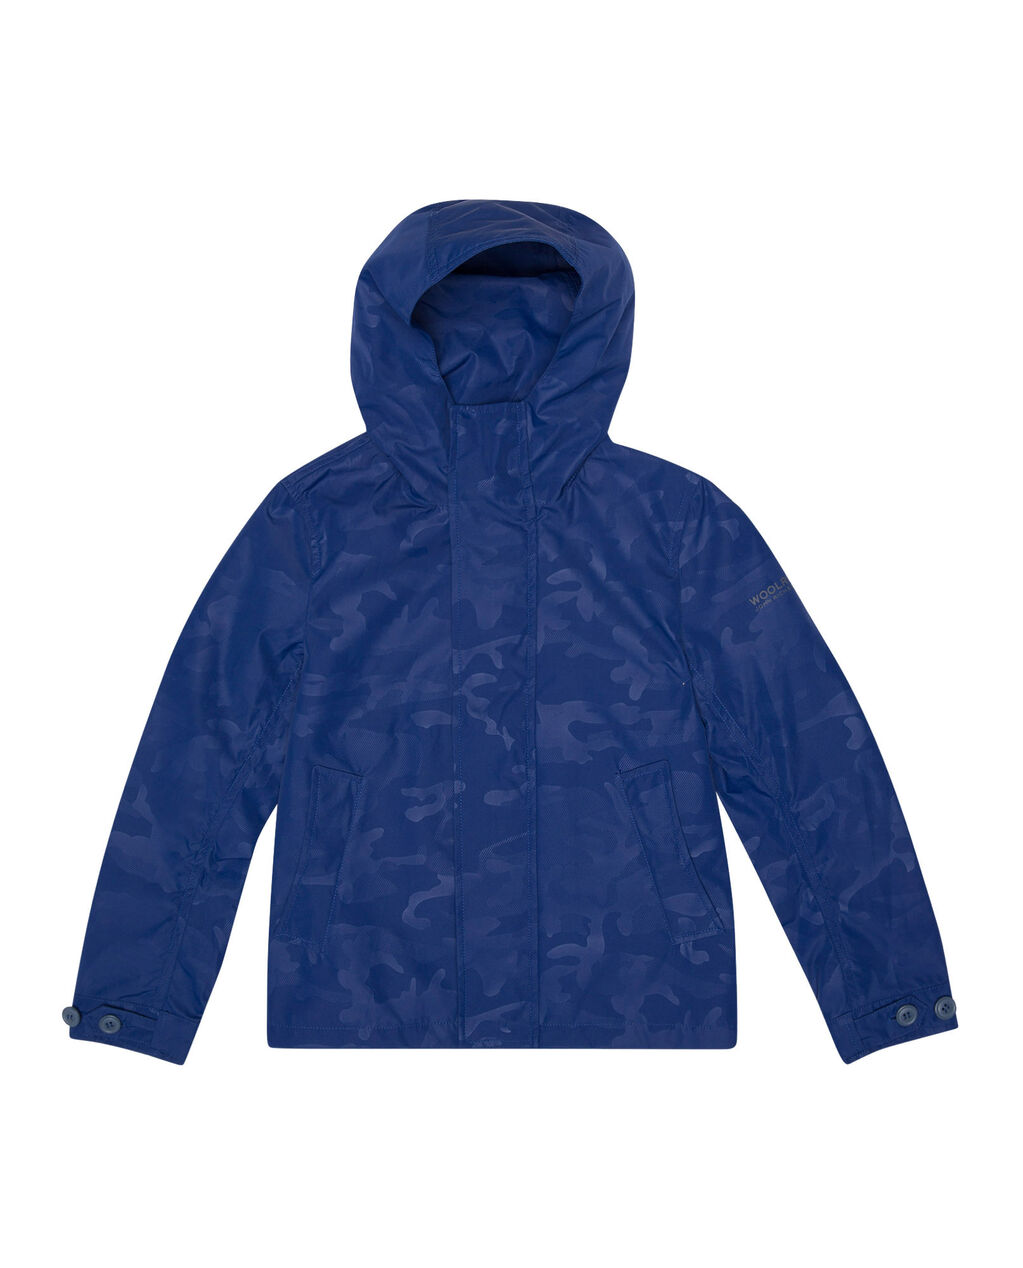 B'S Camou Rudder Jkt, TWILIGHT BLUE, hi-res